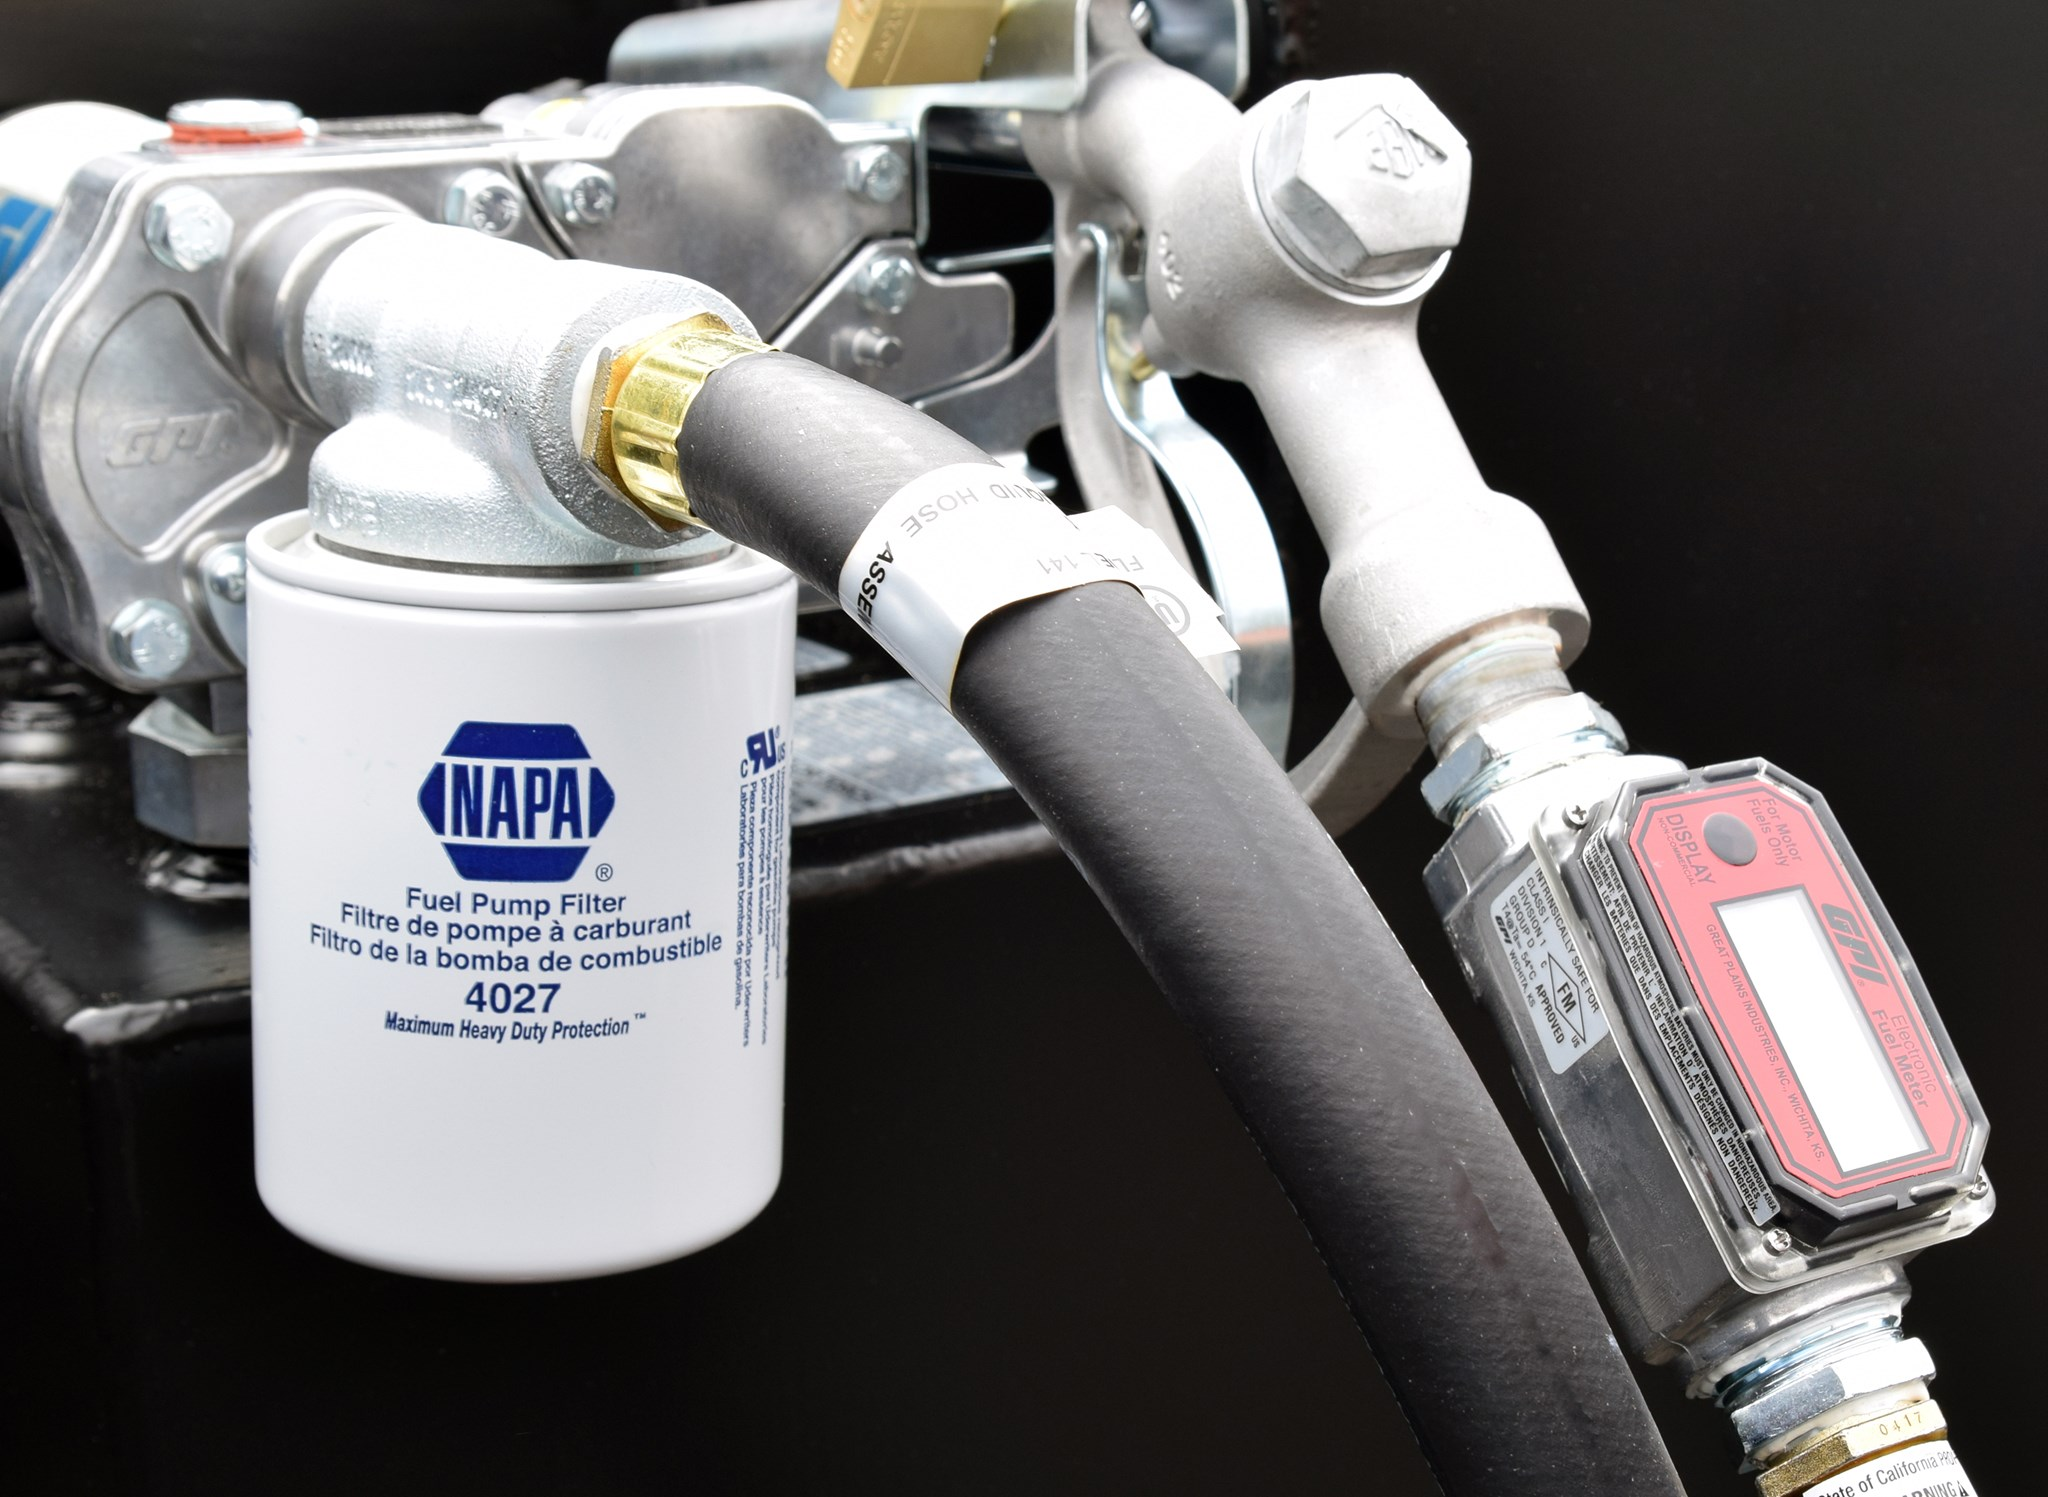 Napa In-line Fuel Filter Kit for Refueling Tank - Transfer Flow, Inc. -  Aftermarket Fuel Tank Systems